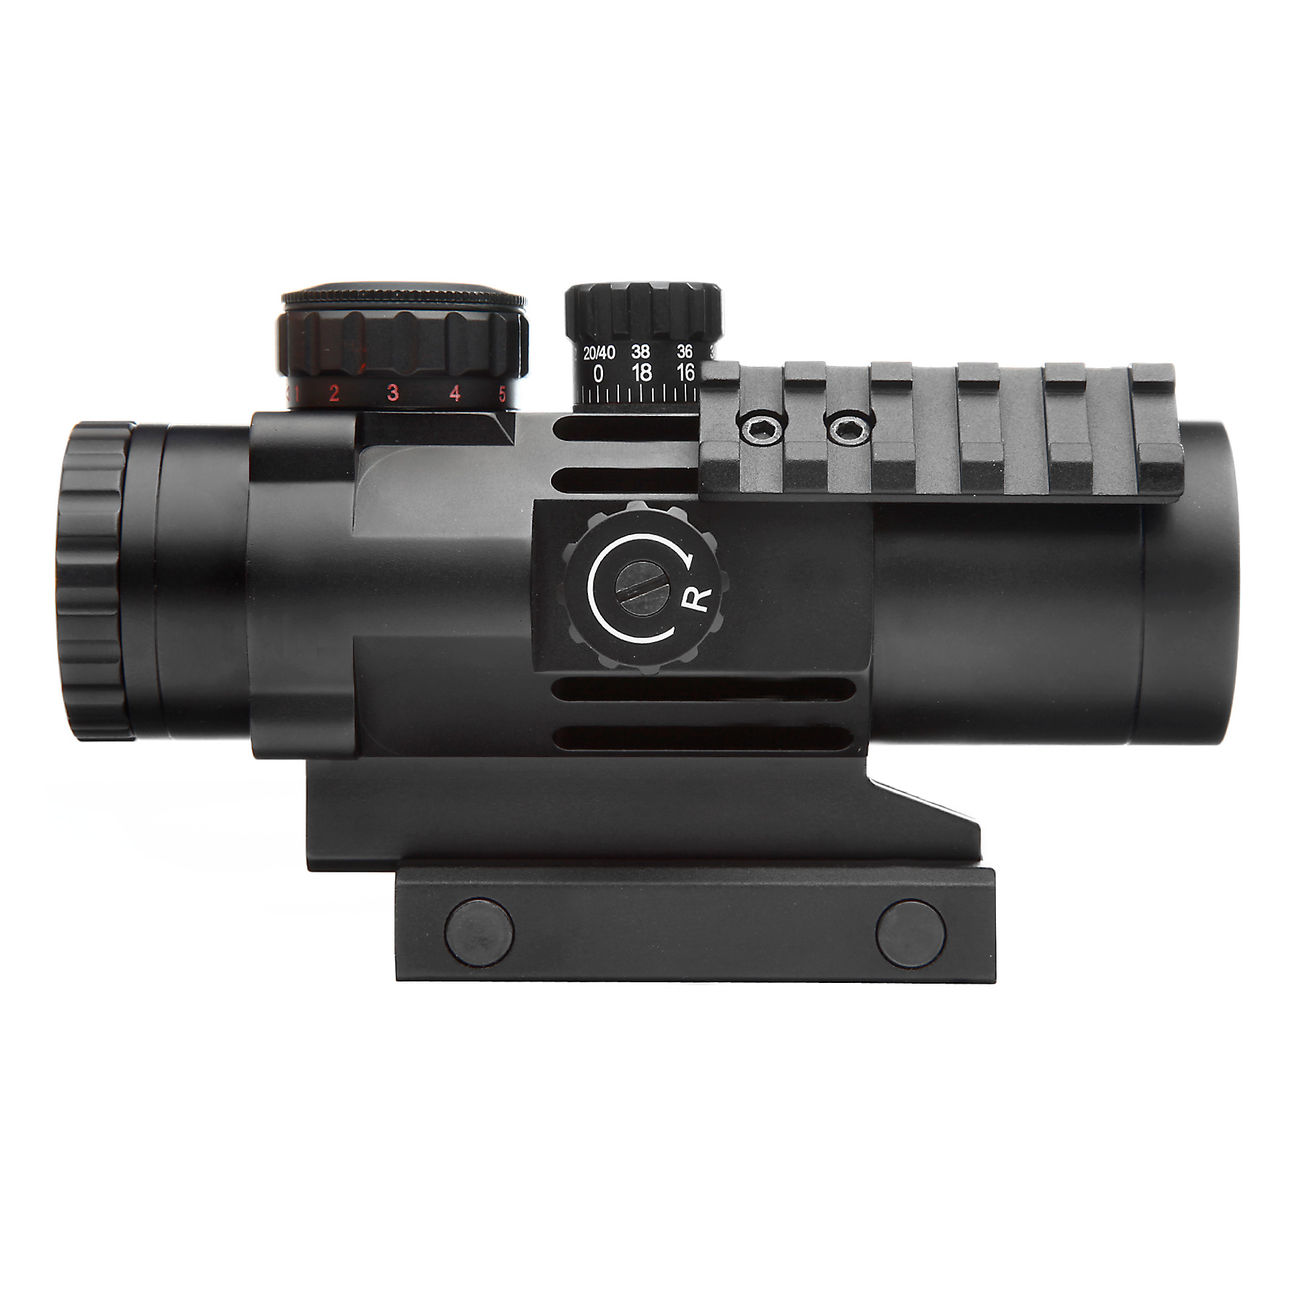 Strike Systems Tactical Red-/Green-Dot Scope mit Zusatzschienen 3x32mm schwarz 3